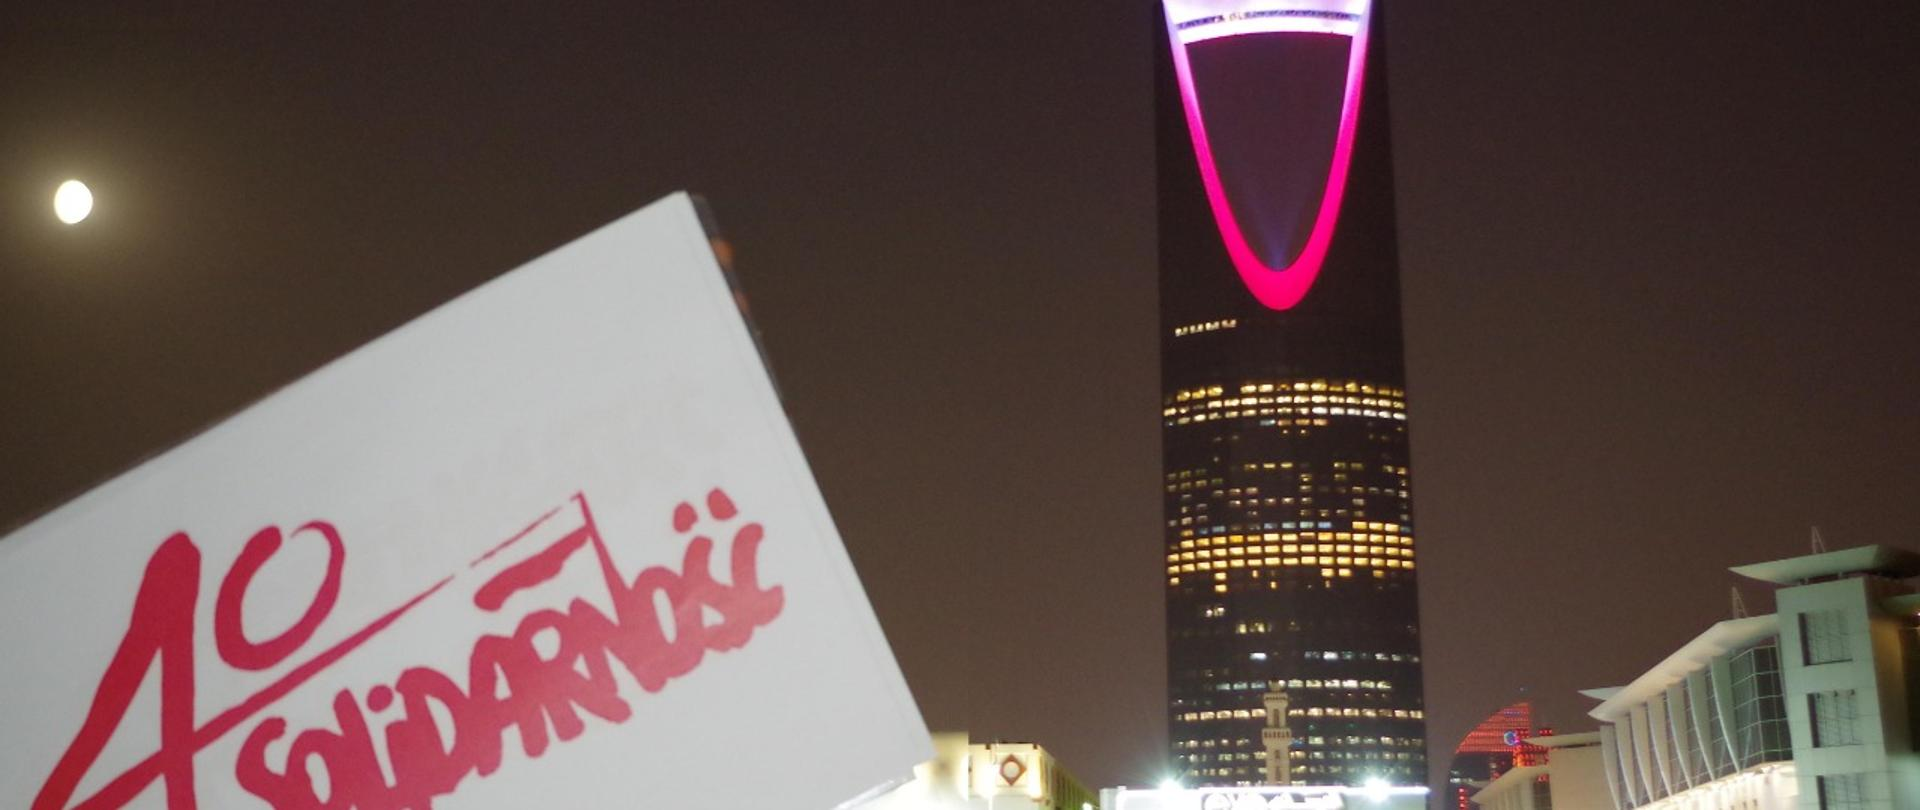 On the Polish Day of Solidarity and Freedom the Kingdom Tower in Riyadh was lit up in Polish white-and-red colors. Celebrations of the 40th anniversary of signing the August Agreements and birth of Solidarity.